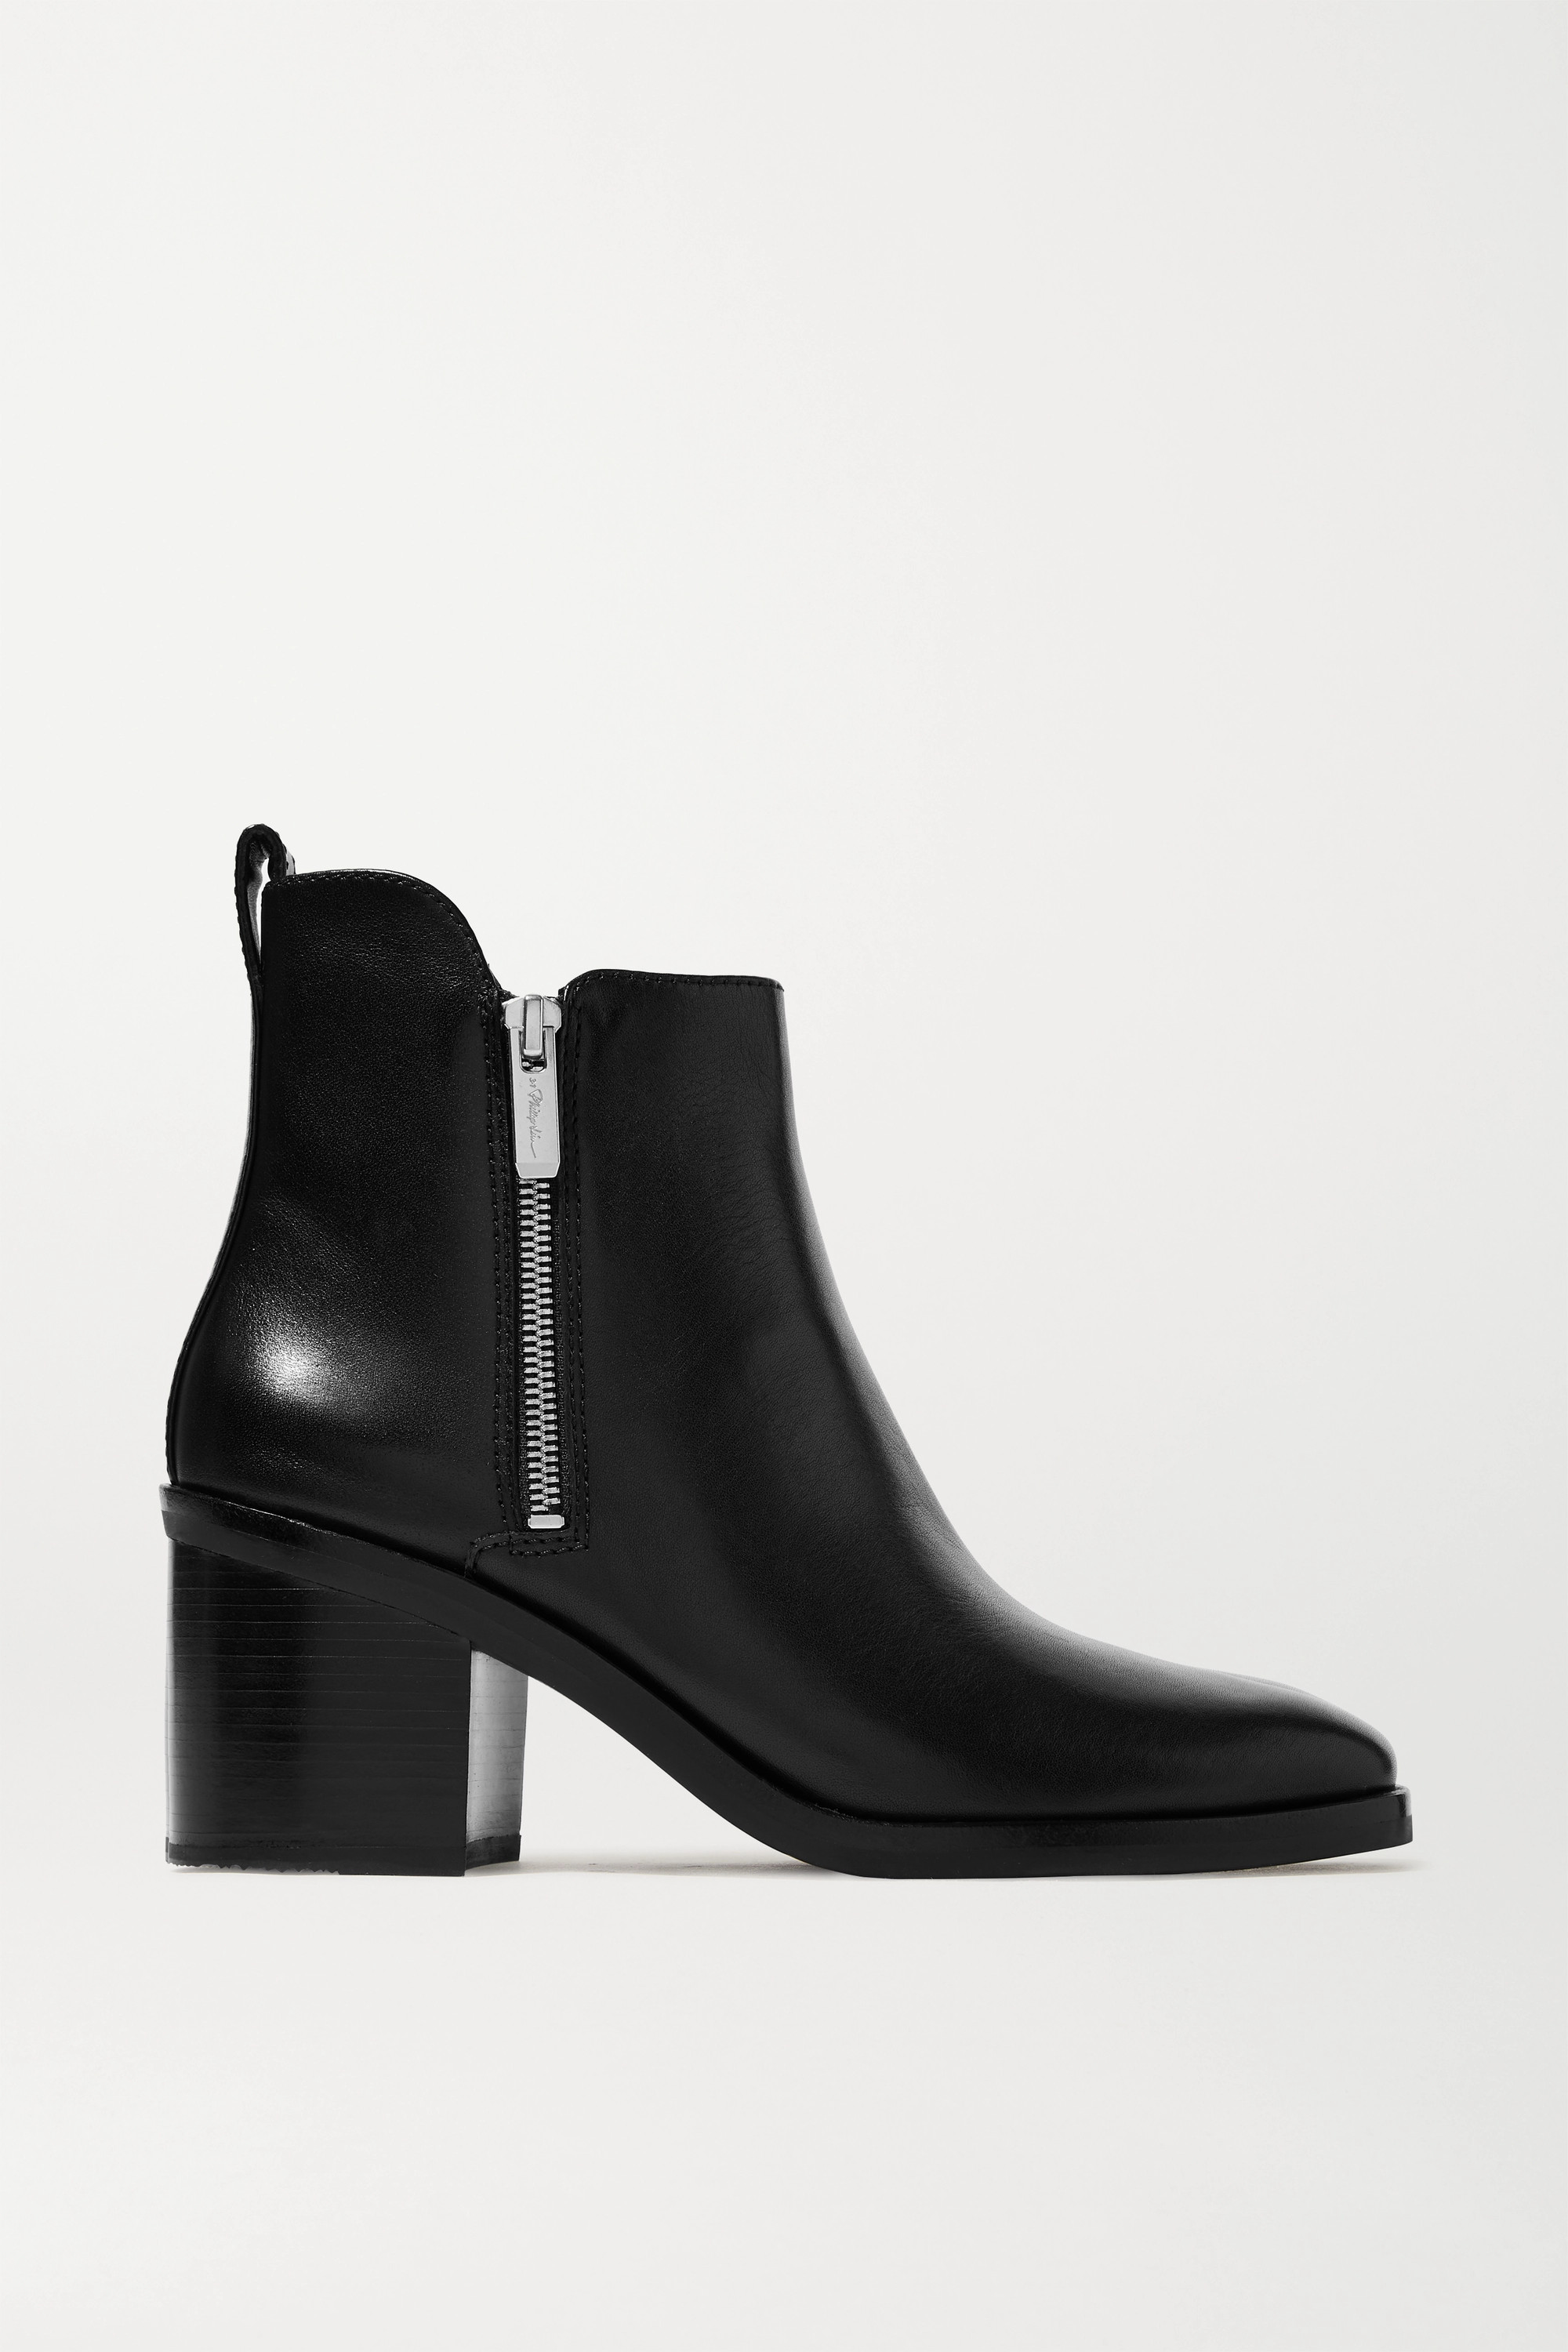 3.1 Phillip Lim Alexa leather ankle boots